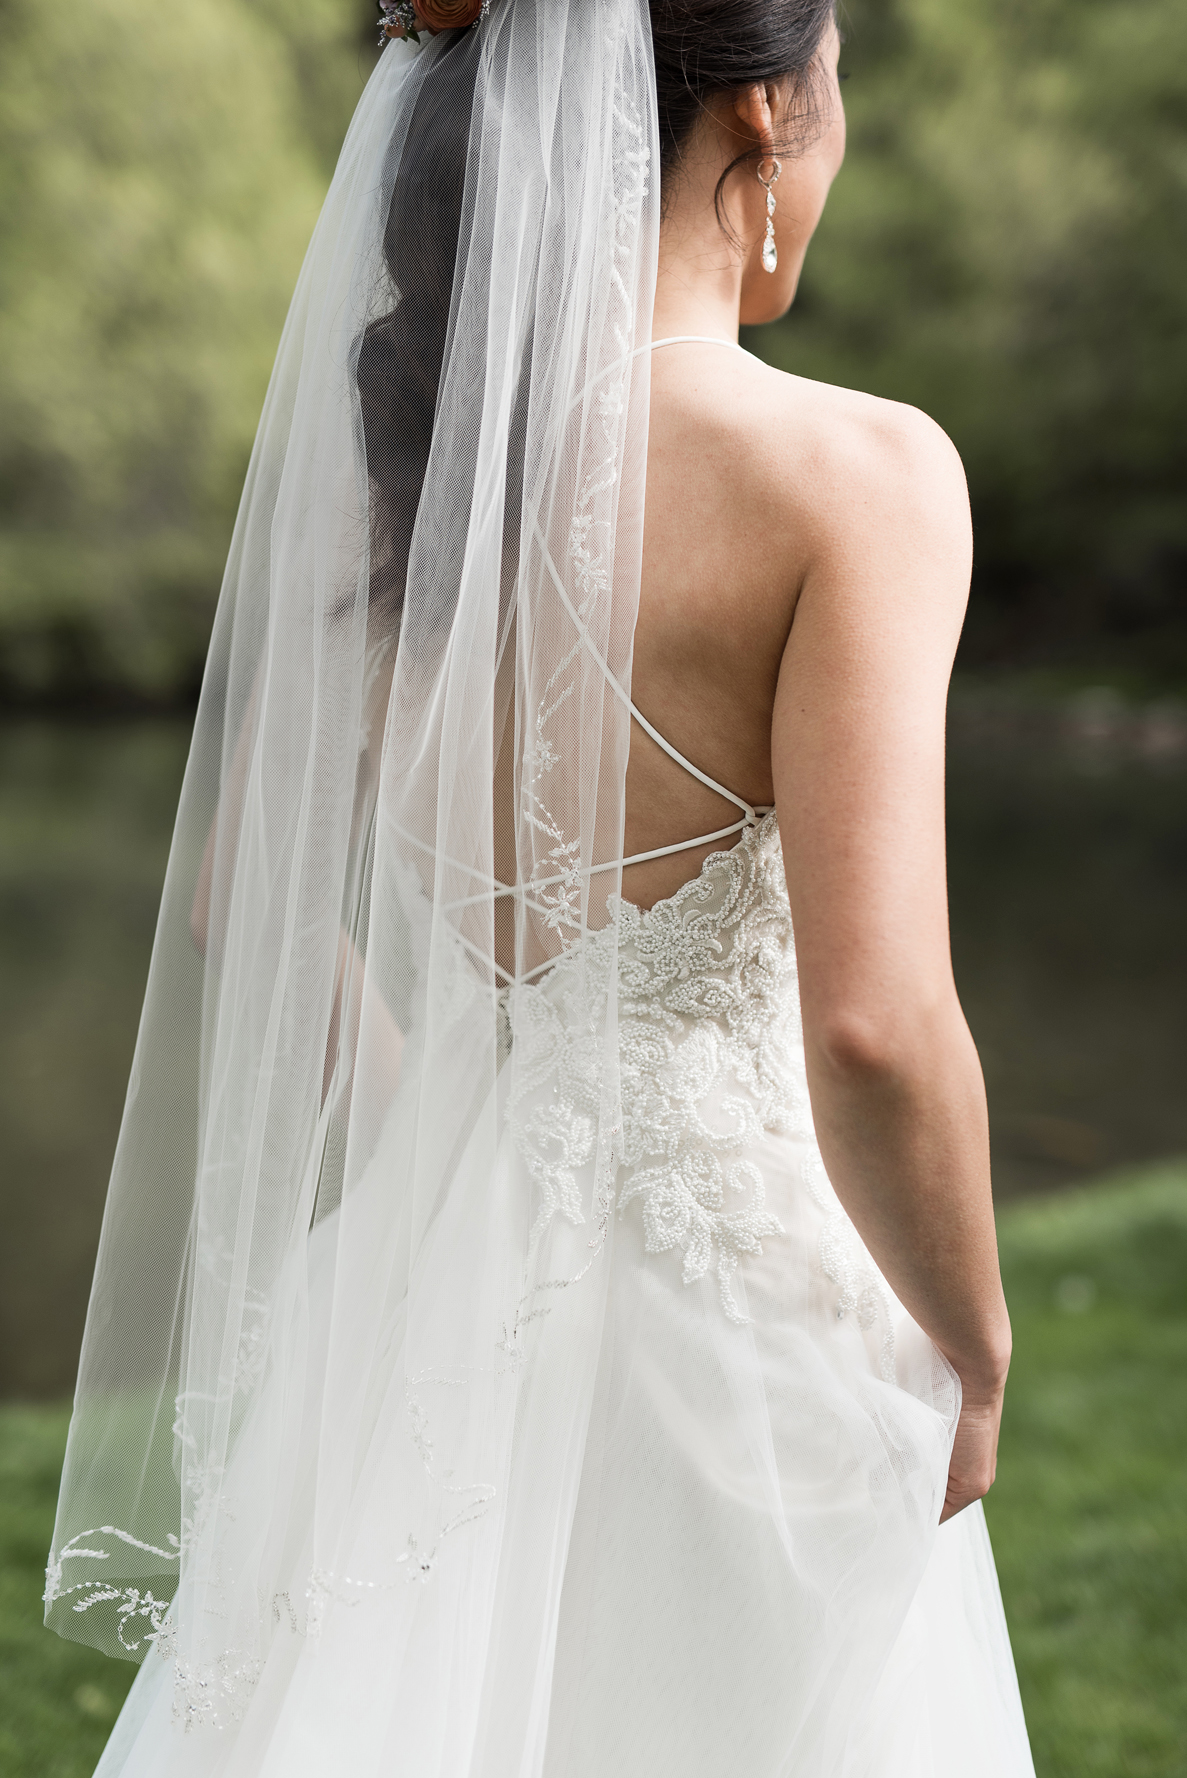 strappy wedding dress back in the mountains